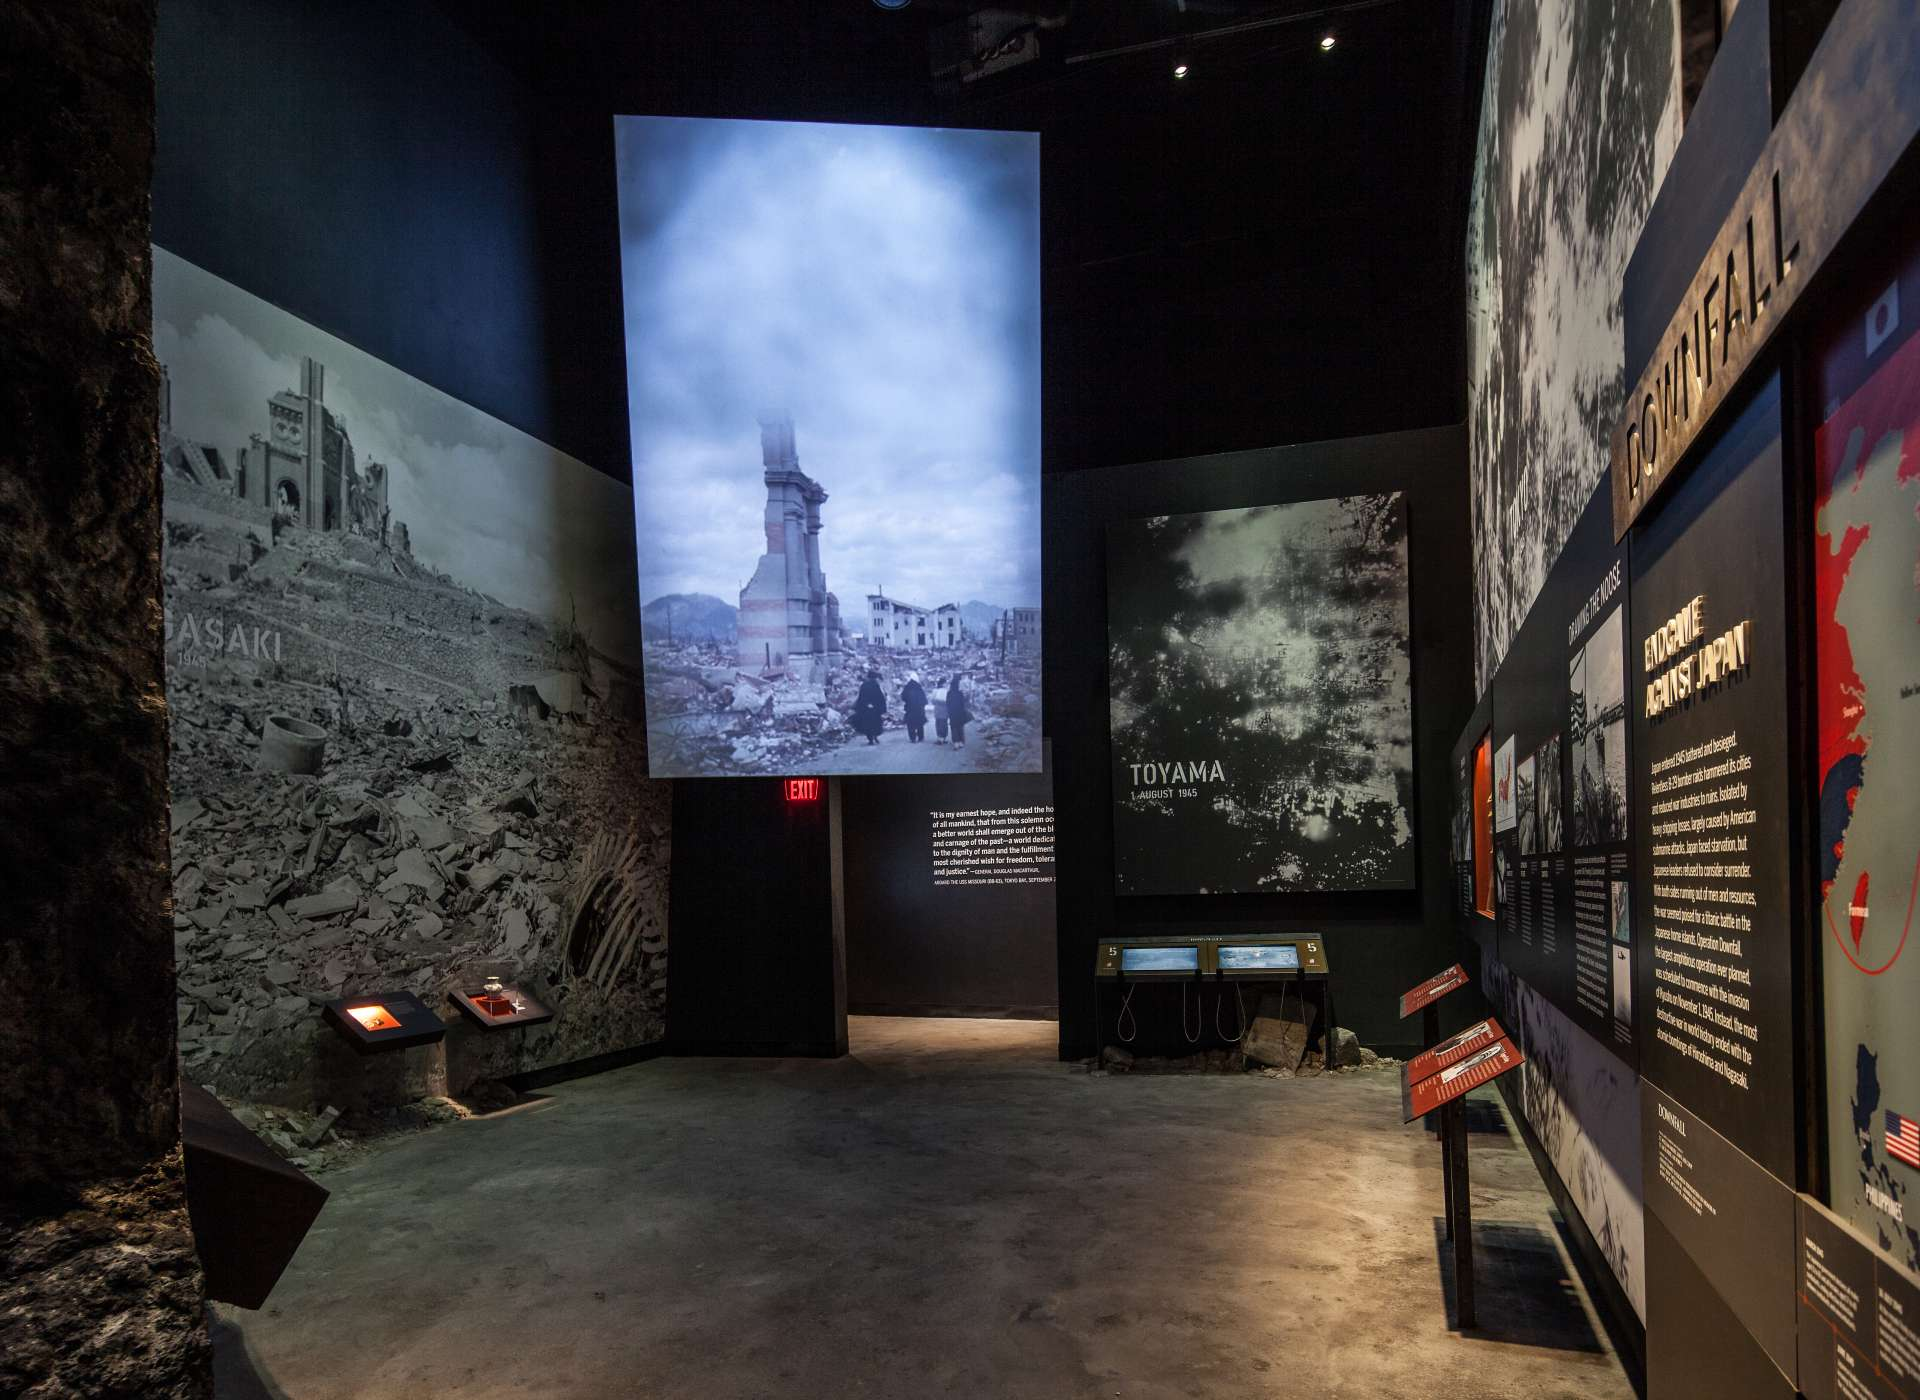 Downfall gallery, the aftermath of Nagasaki, Road to Tokyo